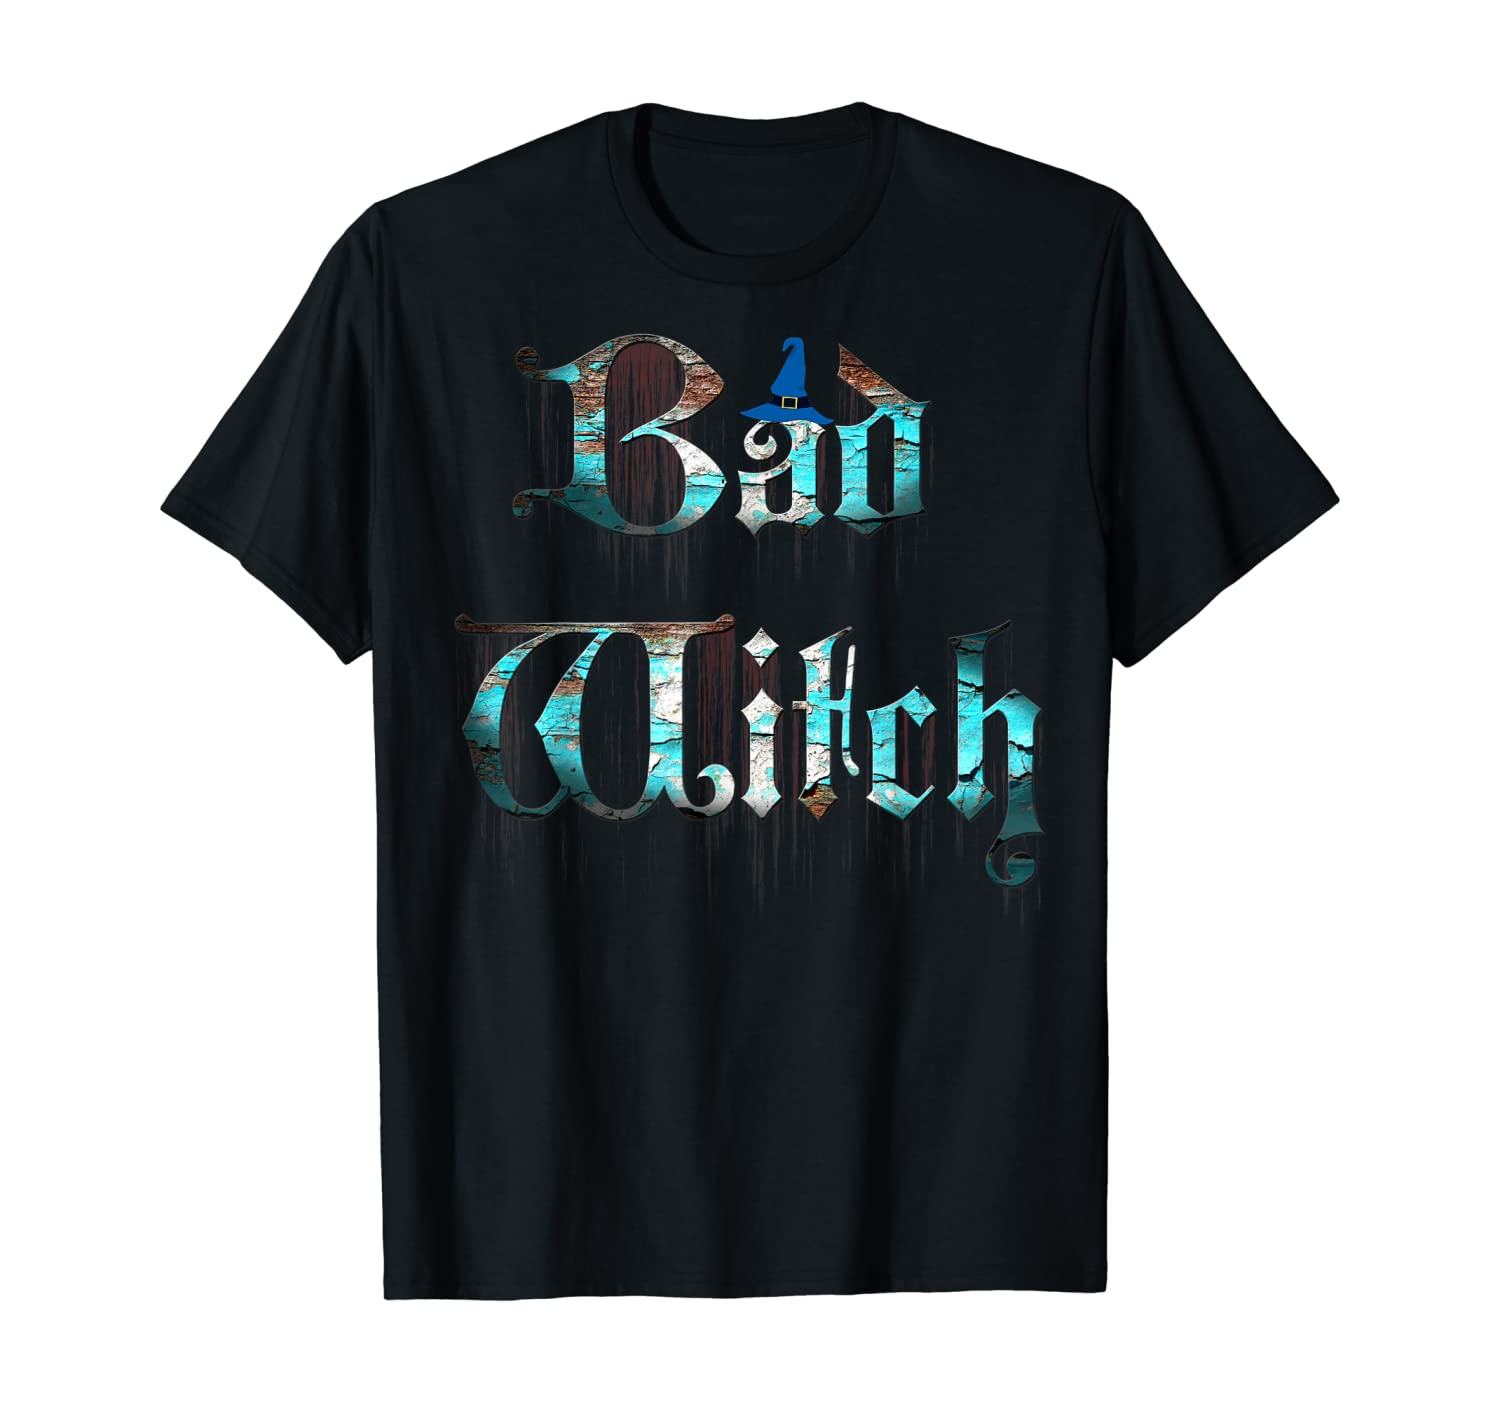 Bad Witch - Spooky Bloody Halloween Witch Costume T-Shirt